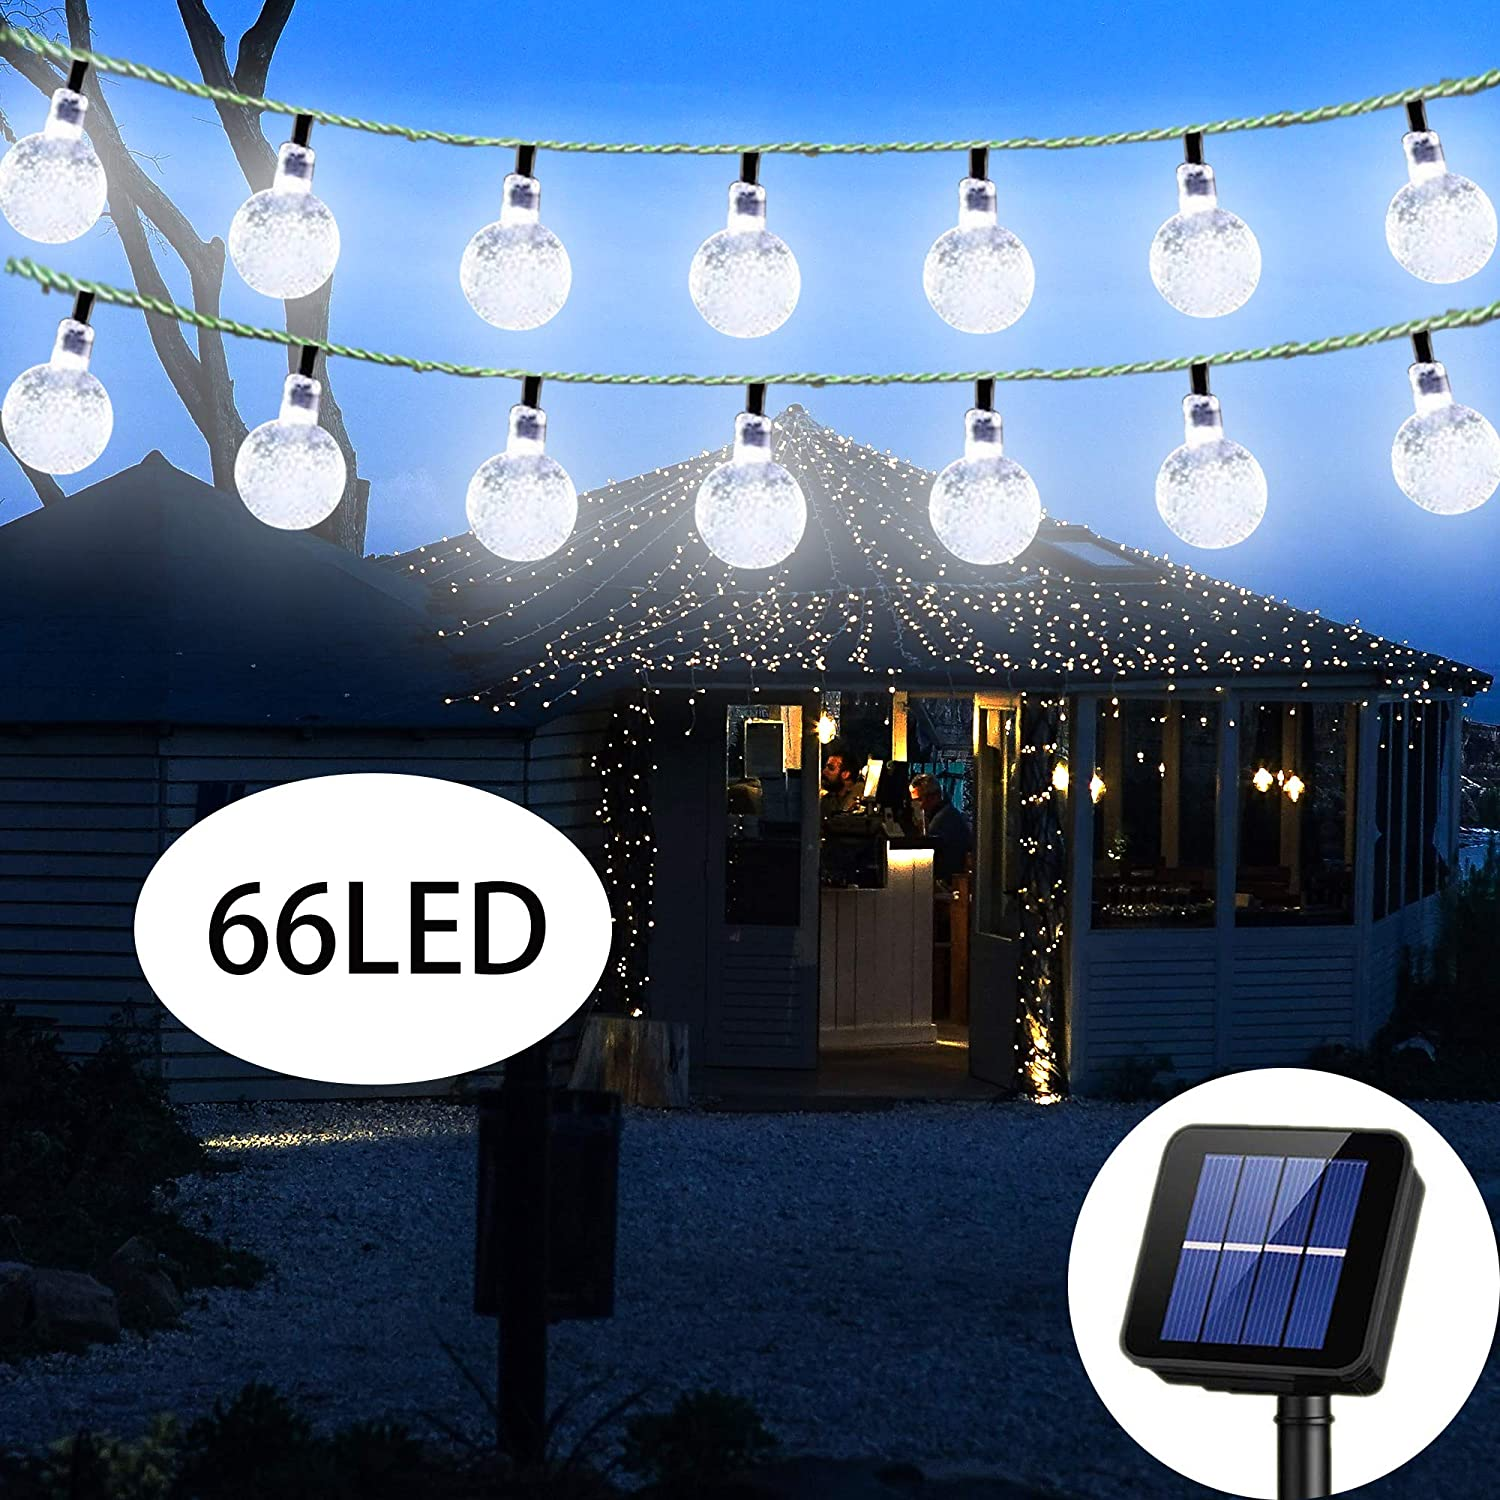 Irecey Solar String Lights Globe 38 Feet 66 Crystal Balls Waterproof LED Fairy Lights 8 Modes Outdoor Starry Lights Solar Powered String Light for Garden Yard Home Party Wedding Decoration(White)